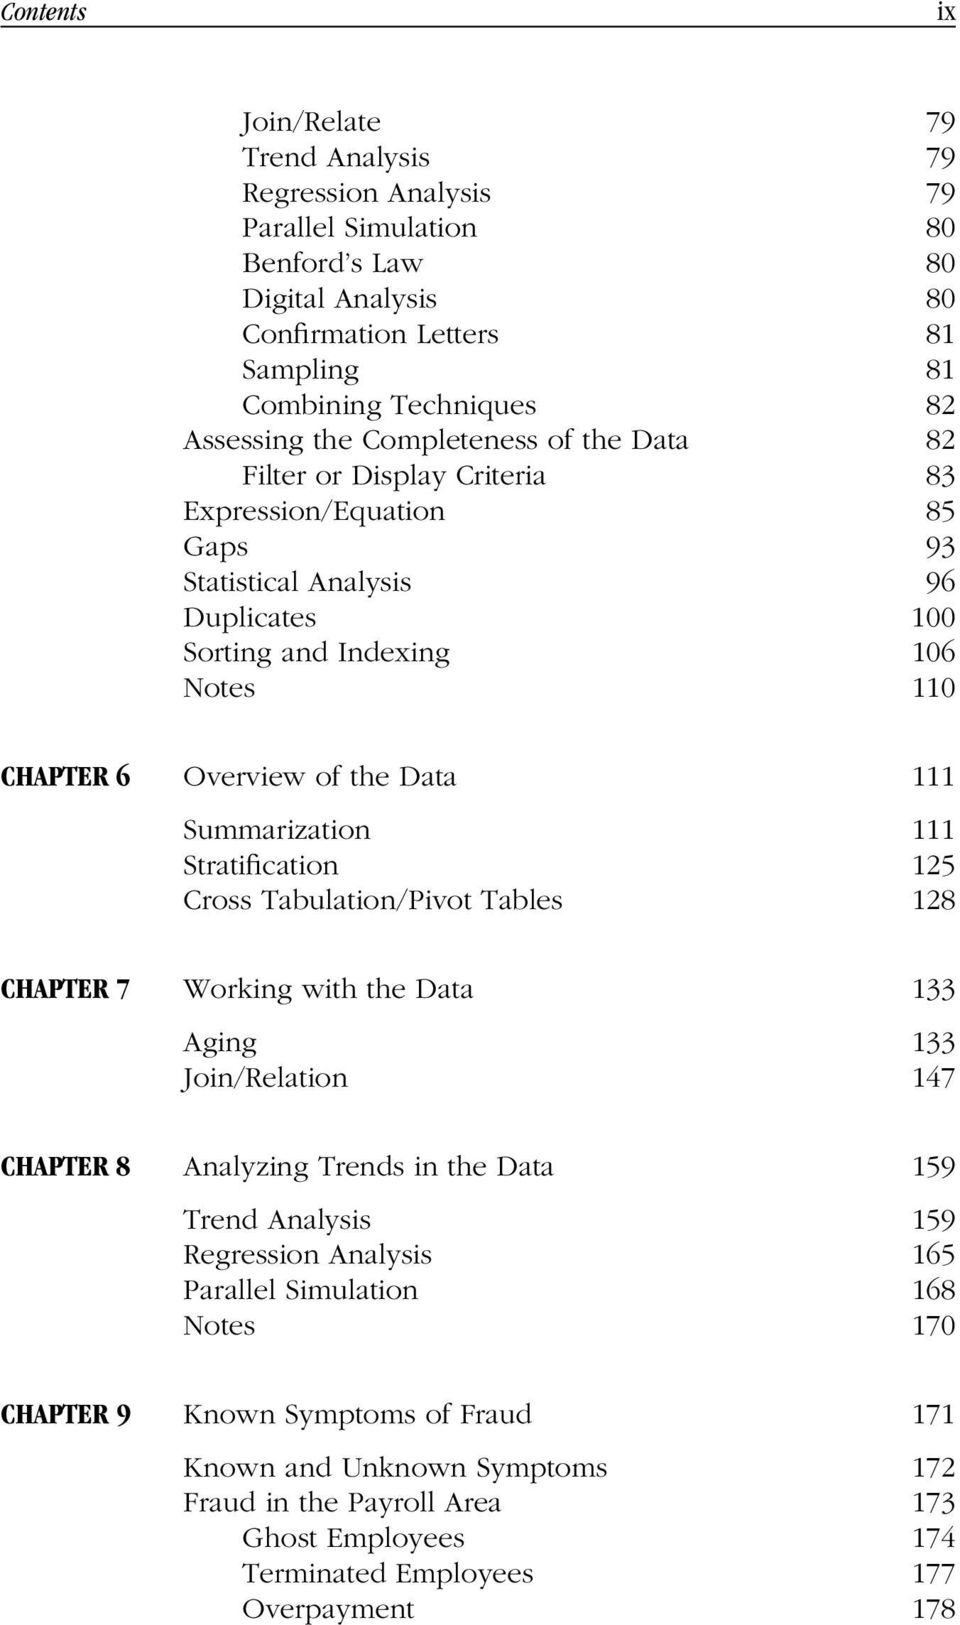 Summarization 111 Stratification 125 Cross Tabulation/Pivot Tables 128 CHAPTER 7 Working with the Data 133 Aging 133 Join/Relation 147 CHAPTER 8 Analyzing Trends in the Data 159 Trend Analysis 159